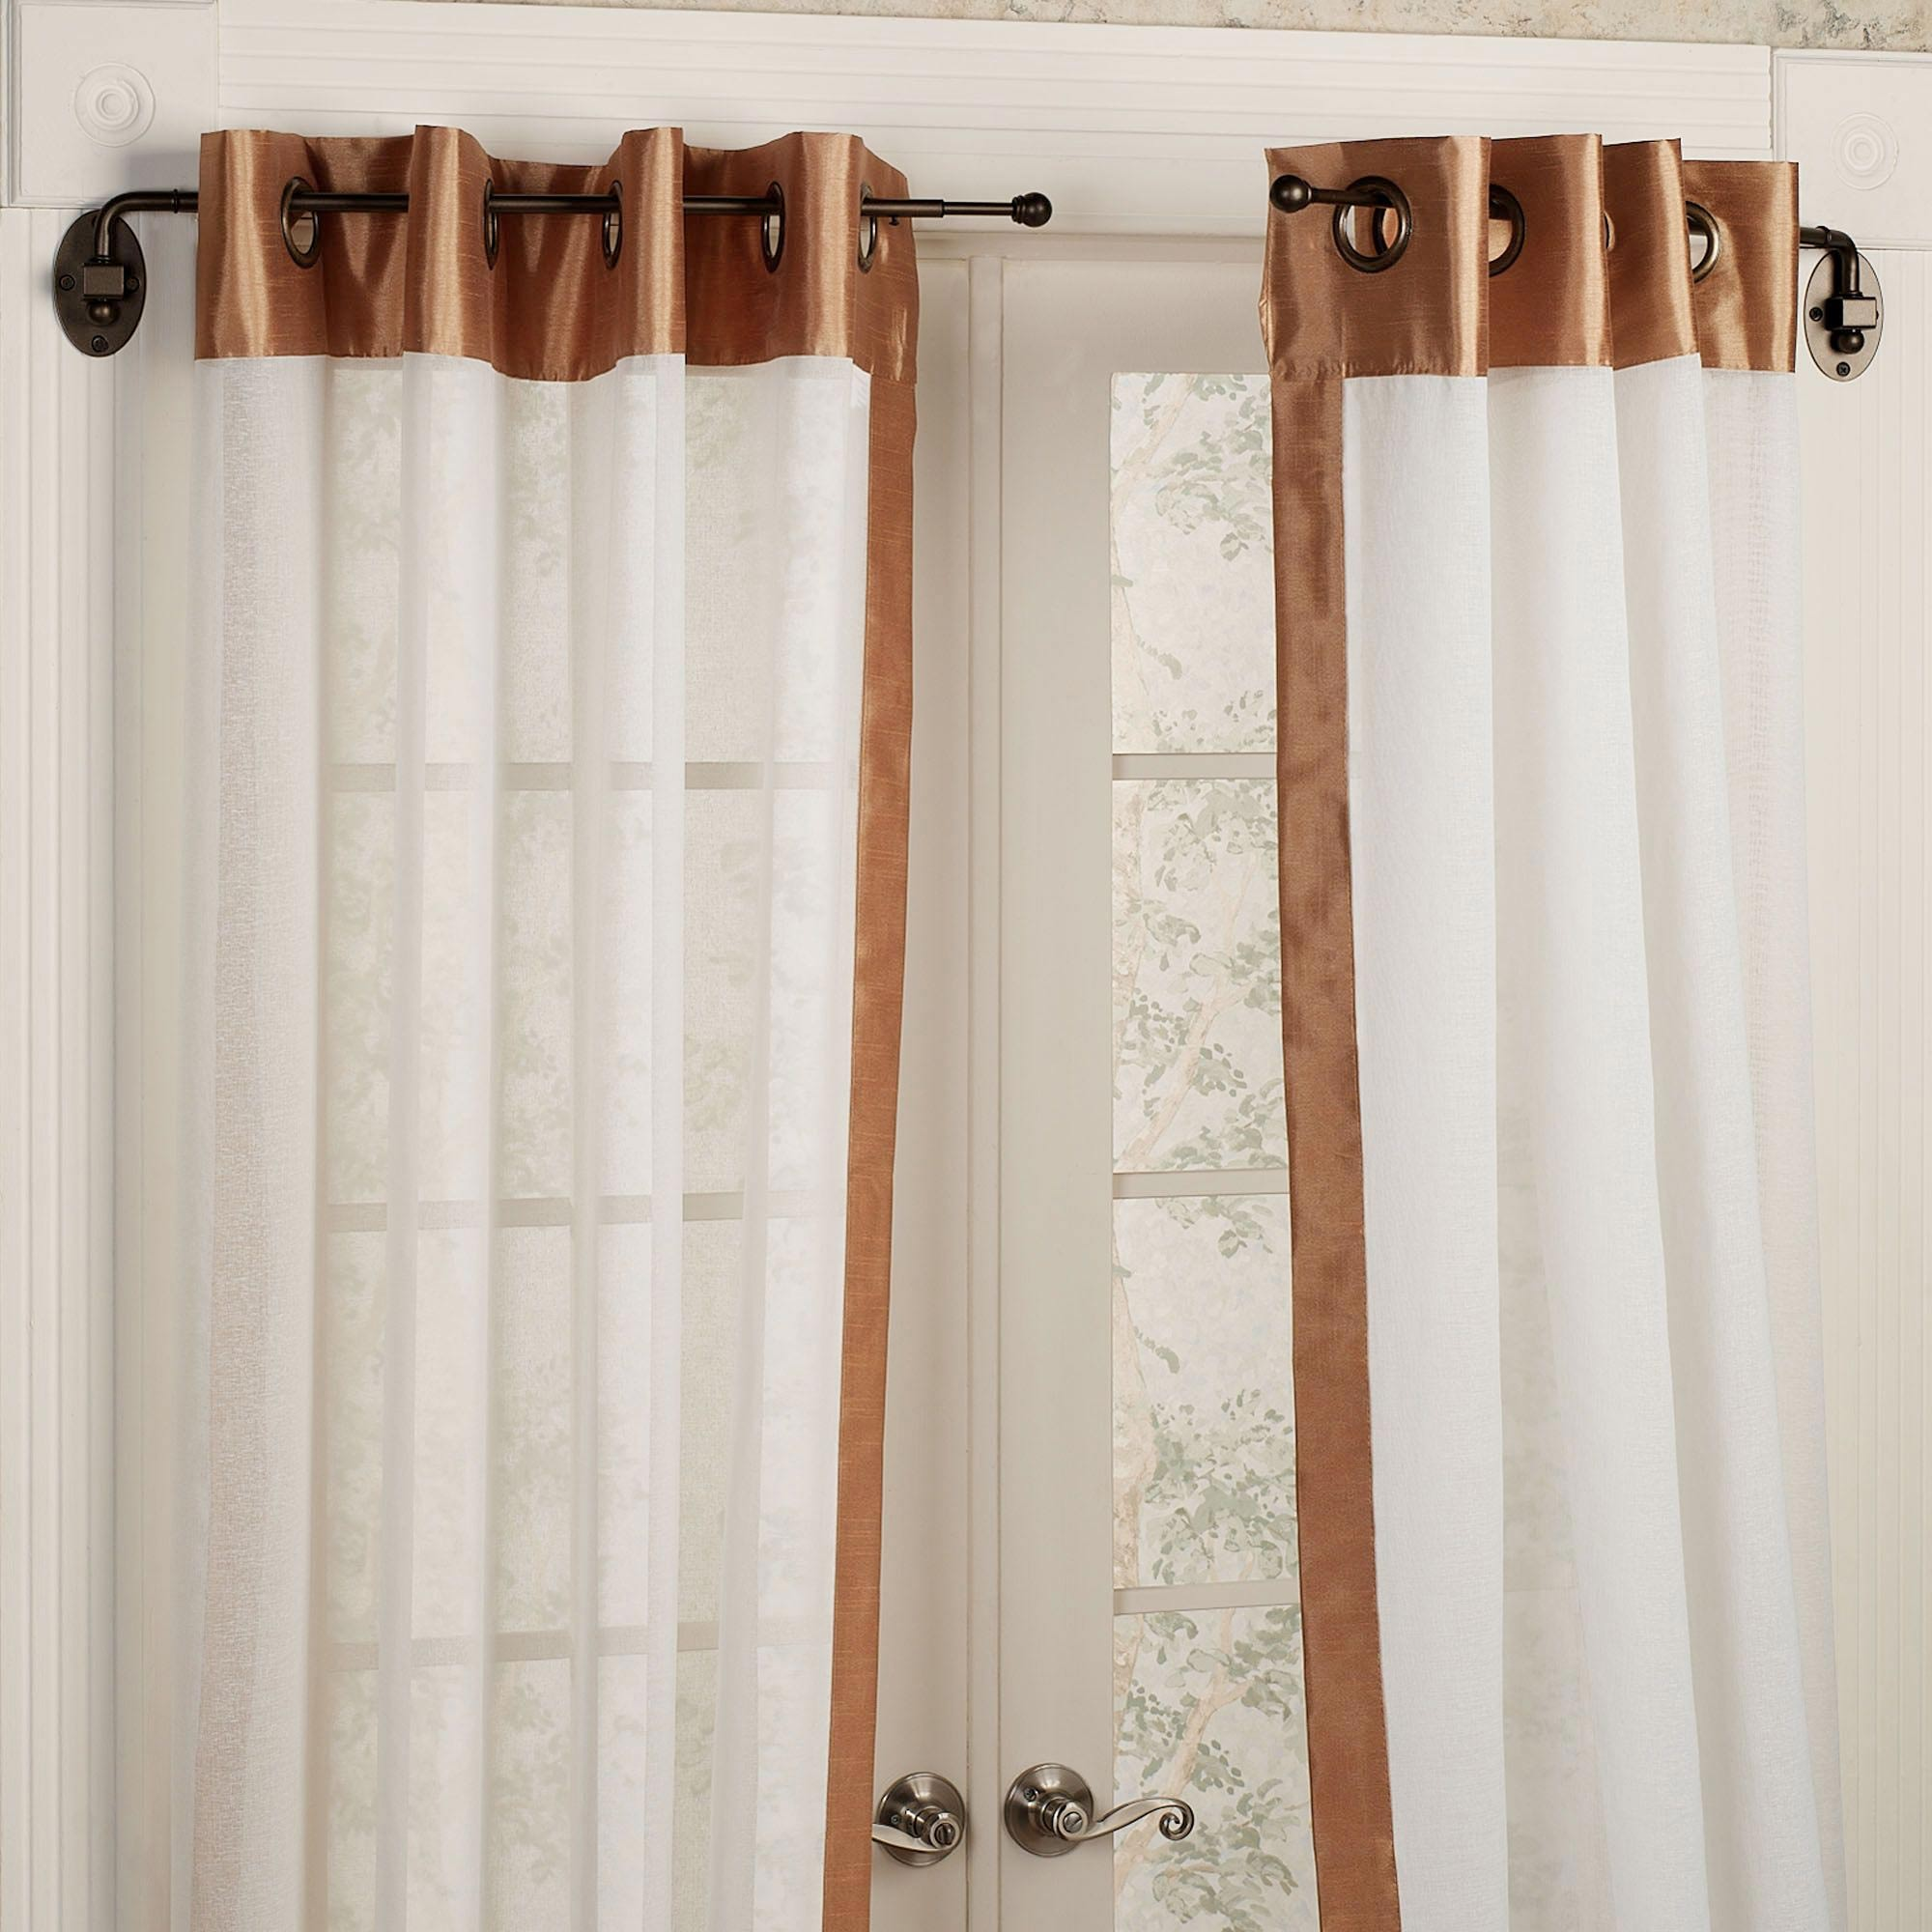 Short Decorative Curtain Rods for Beautiful Living Room Decor